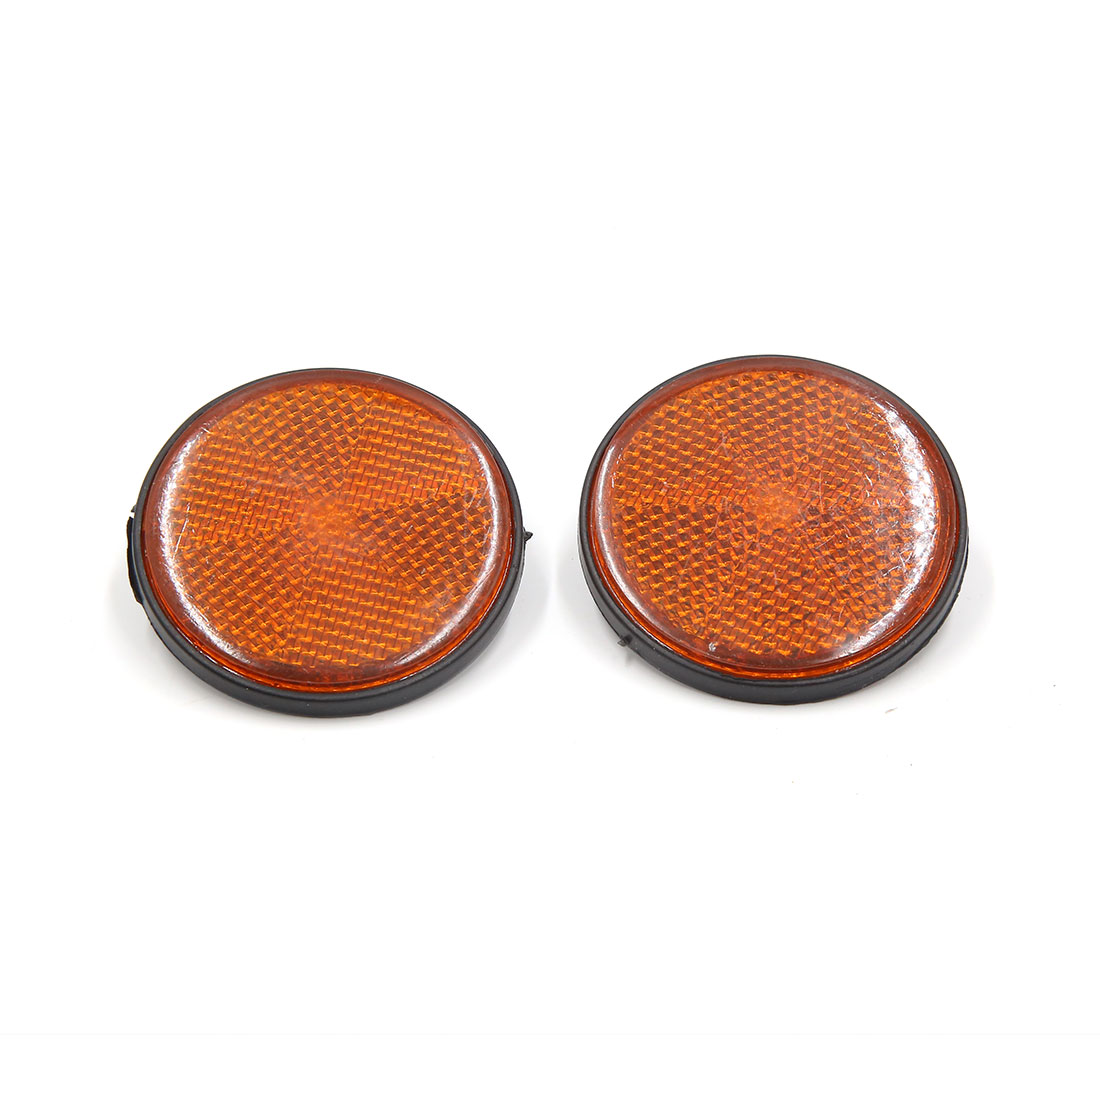 2 Pcs 56mm Dia Plastic Round Reflective Warning Plate Reflector for Motorcycle